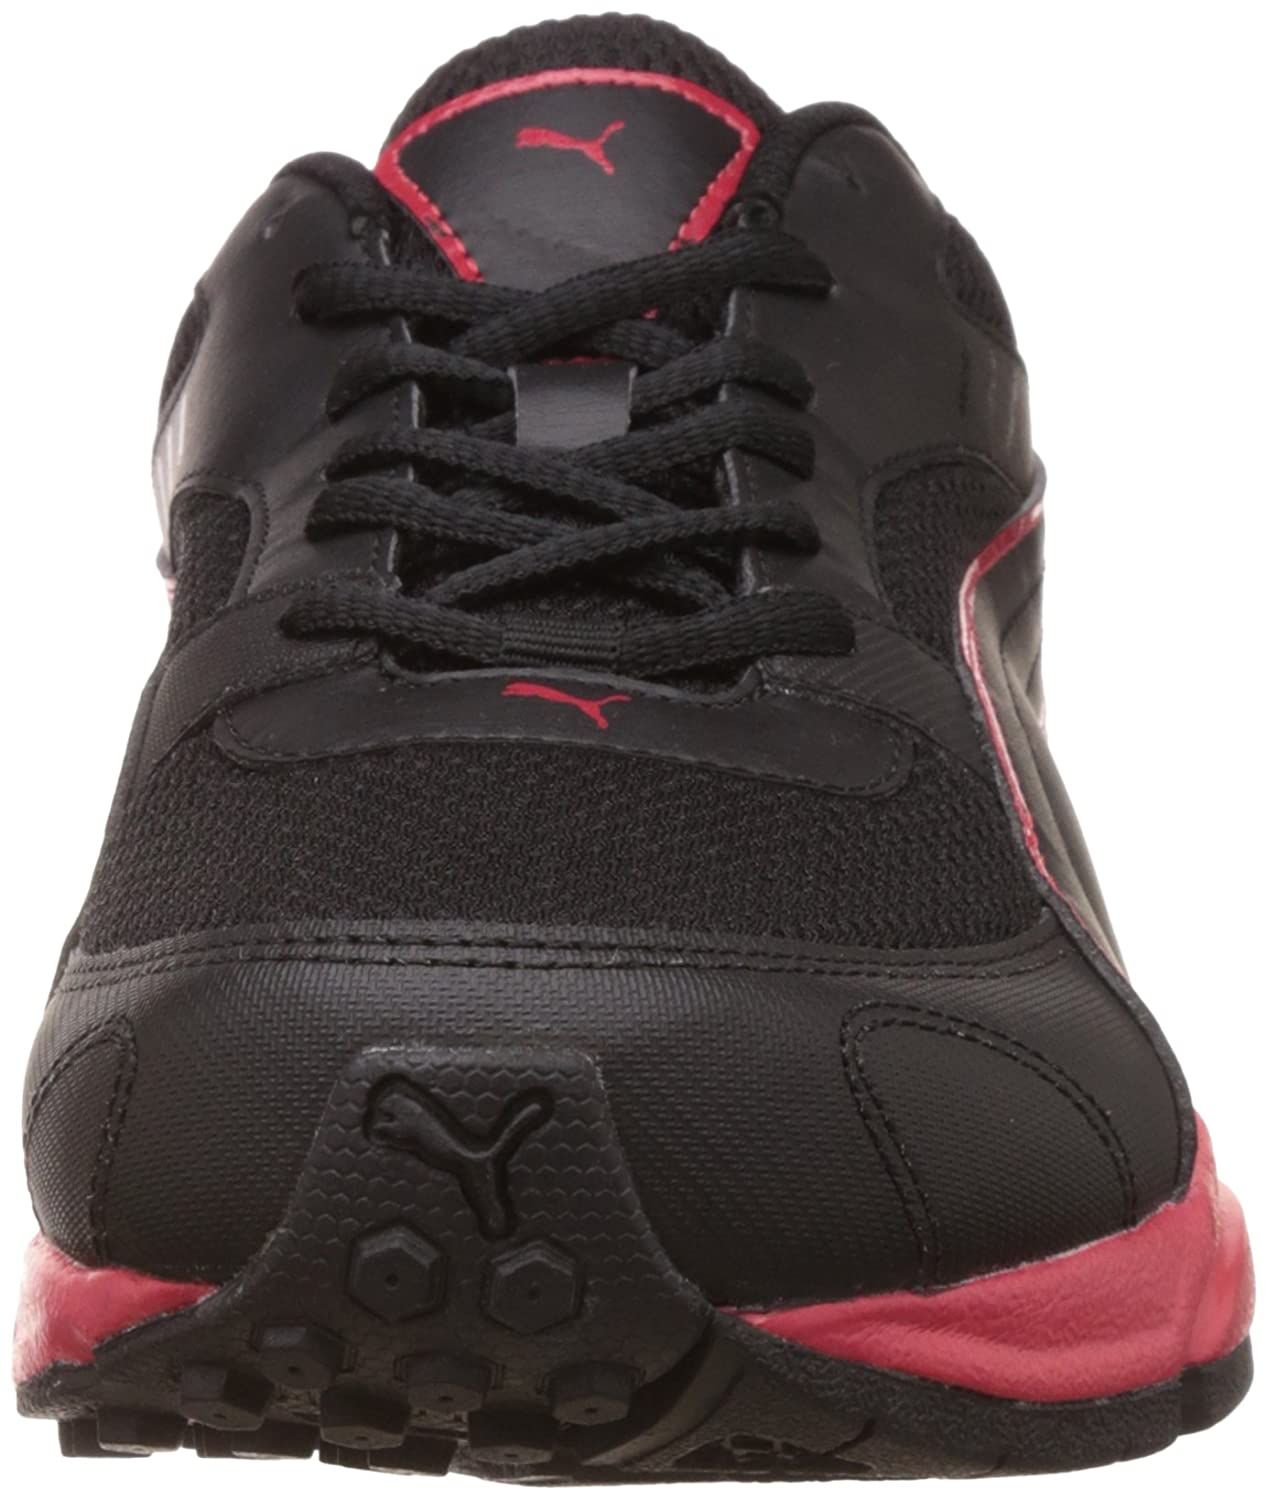 b49fcc5d87dfa9 Puma Men s Atom Fashion III Idp Puma Black and High Risk Red Running Shoes  - 6 UK India (39 EU)  Buy Online at Low Prices in India - Amazon.in